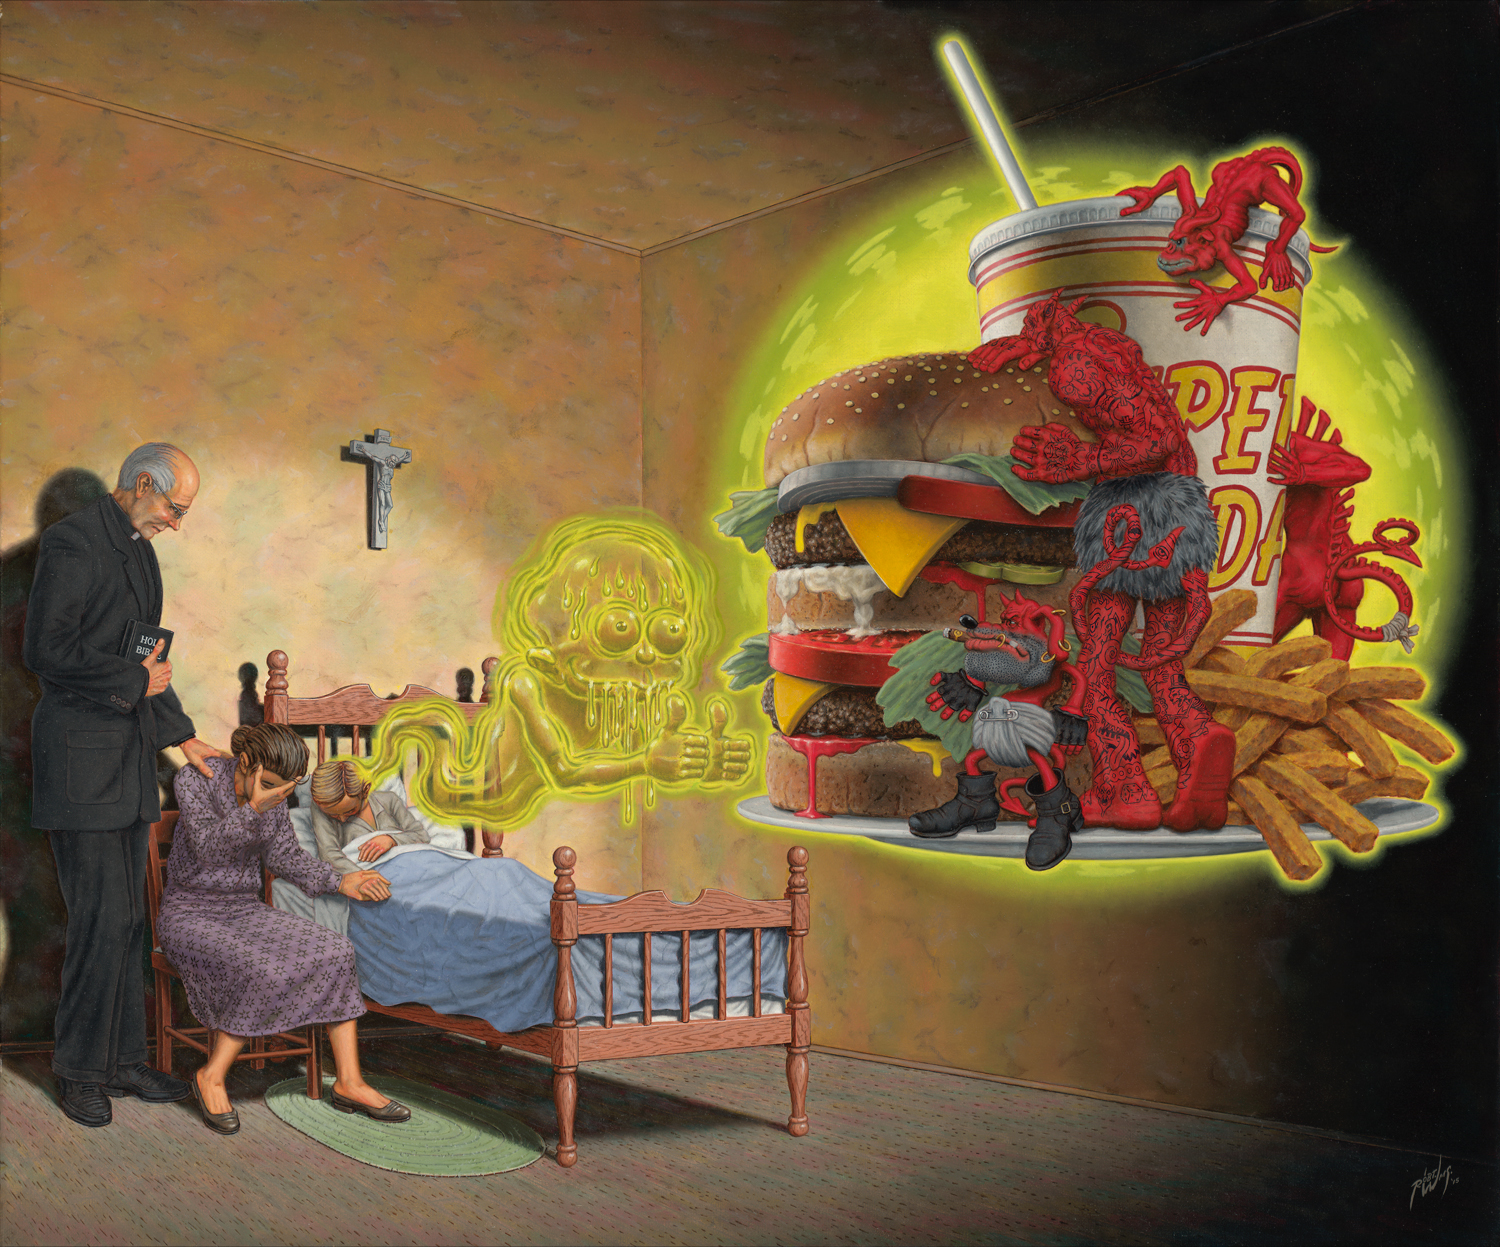 robert-williams-fast-food-purgatory-2015-oil-on-canvas-30-x-36-inches-museum-art-exhibits-slang-aesthetics-carousel-14574-image.jpg